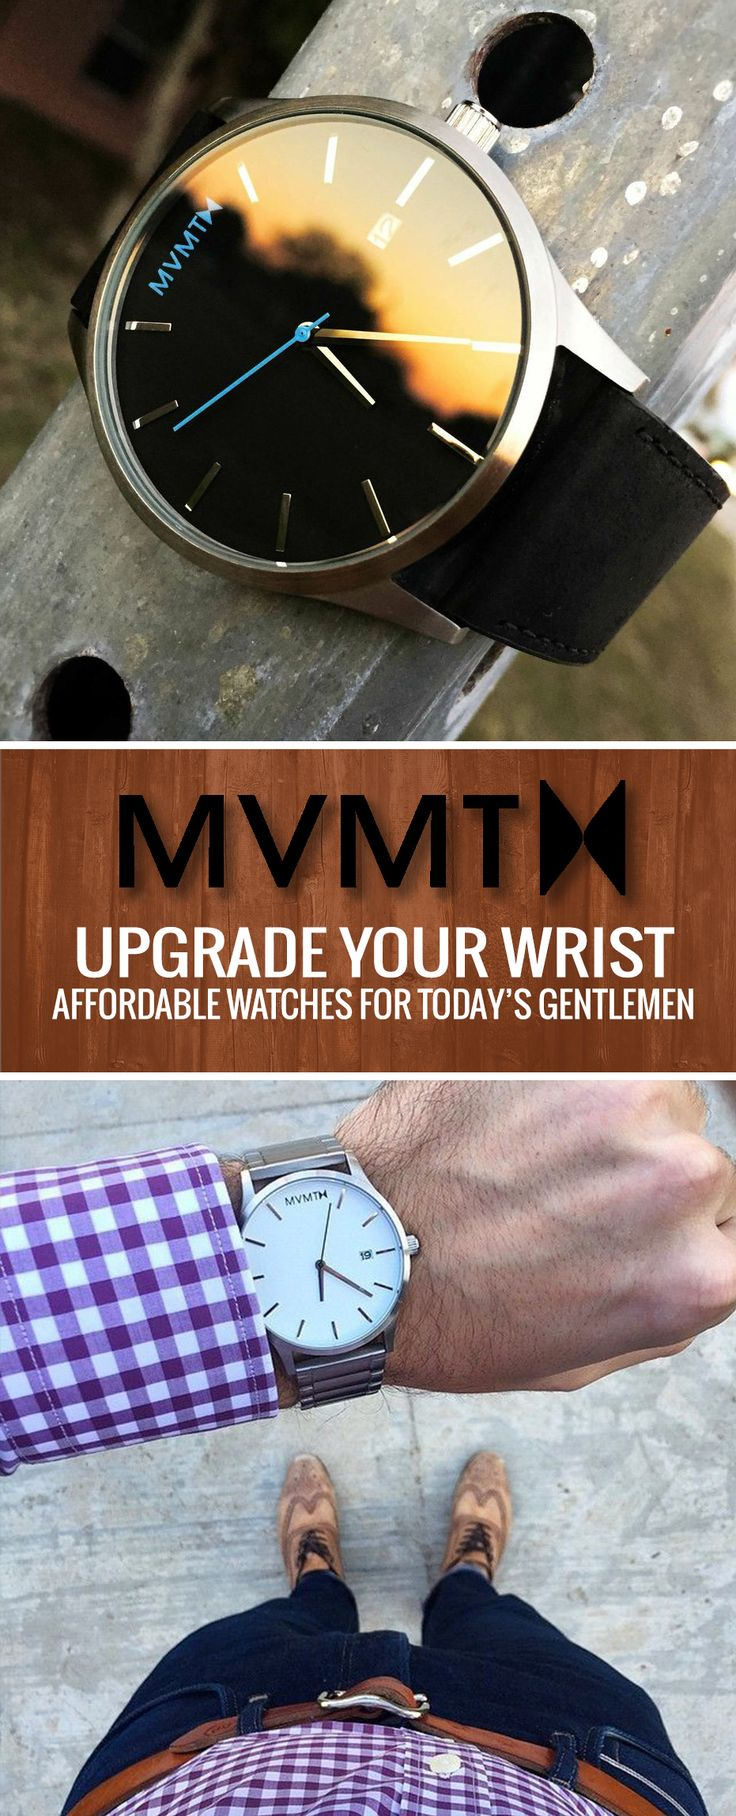 Sporting a beautifully designed watch makes a statement. See why GQ and Playboy rate this as a must have timepiece. Casual to formal, your wrist is covered.